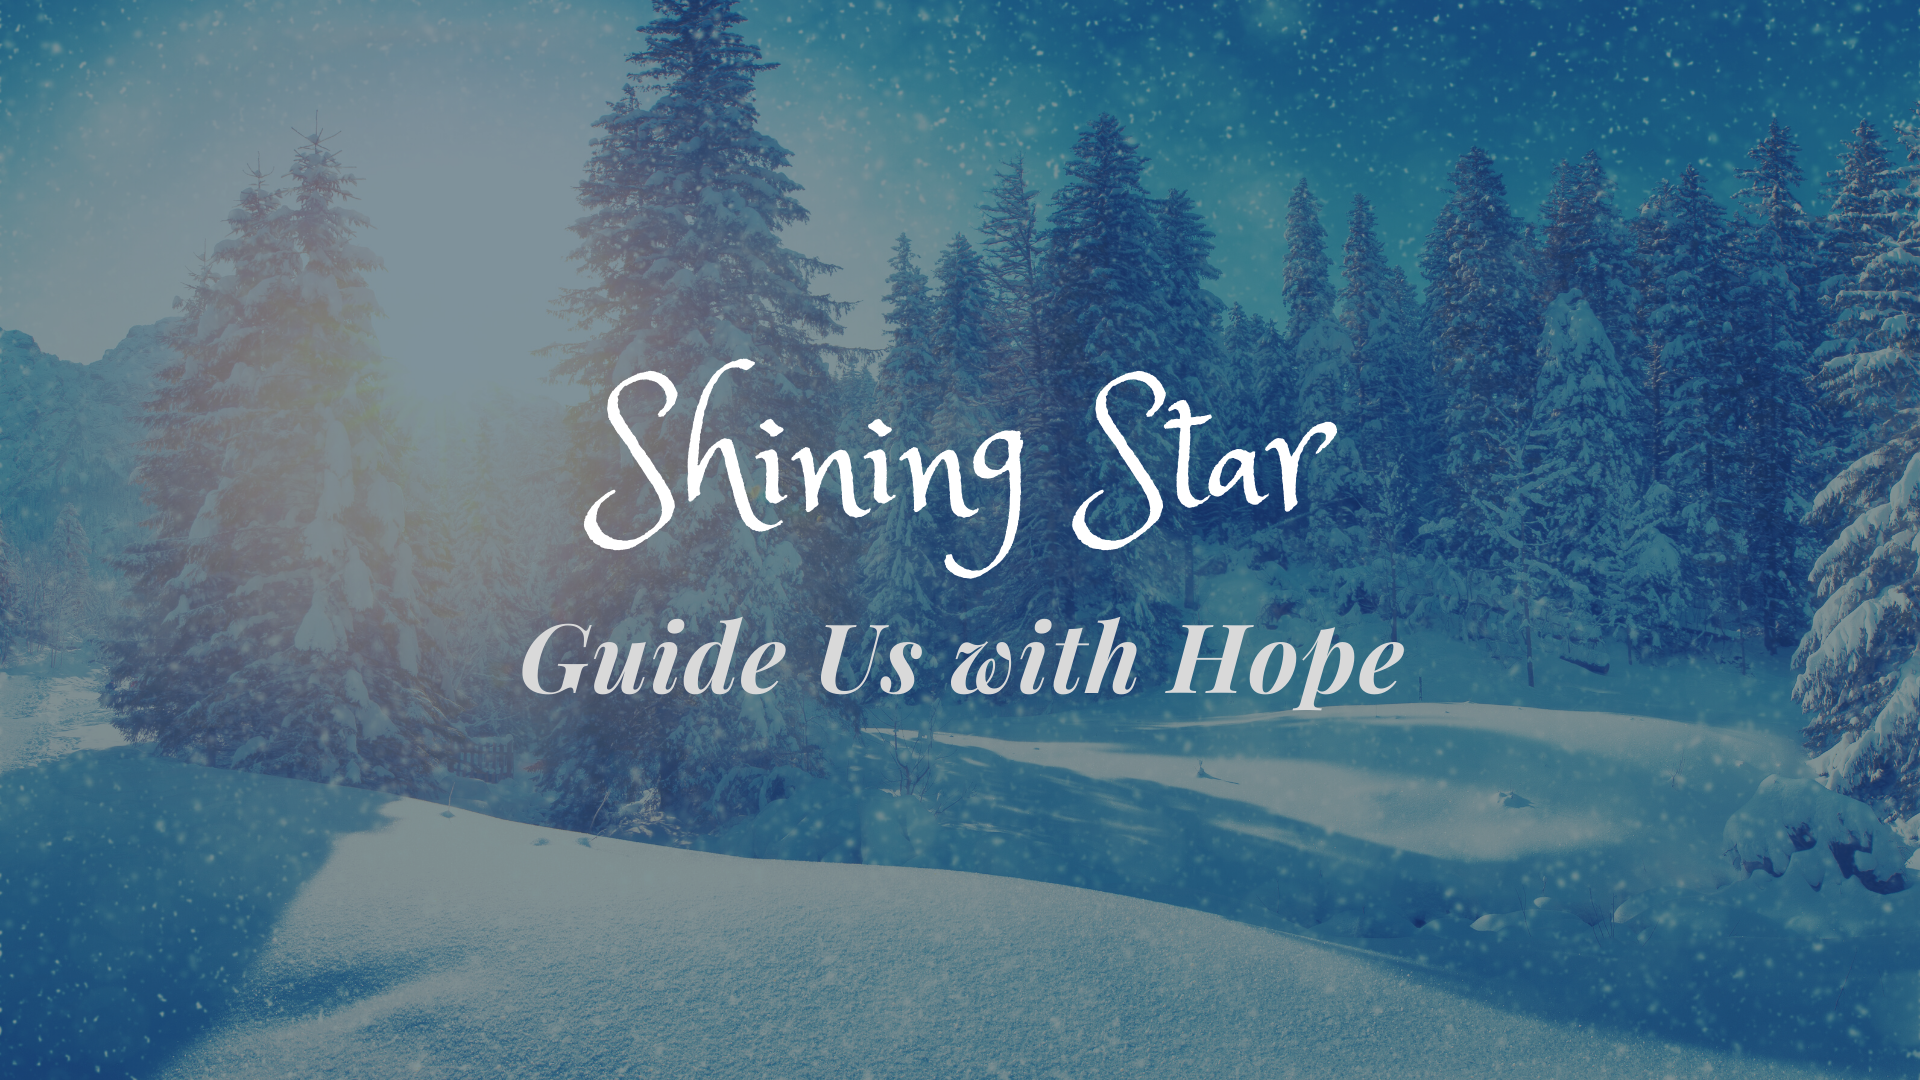 Shining Star Guide Us with Hope